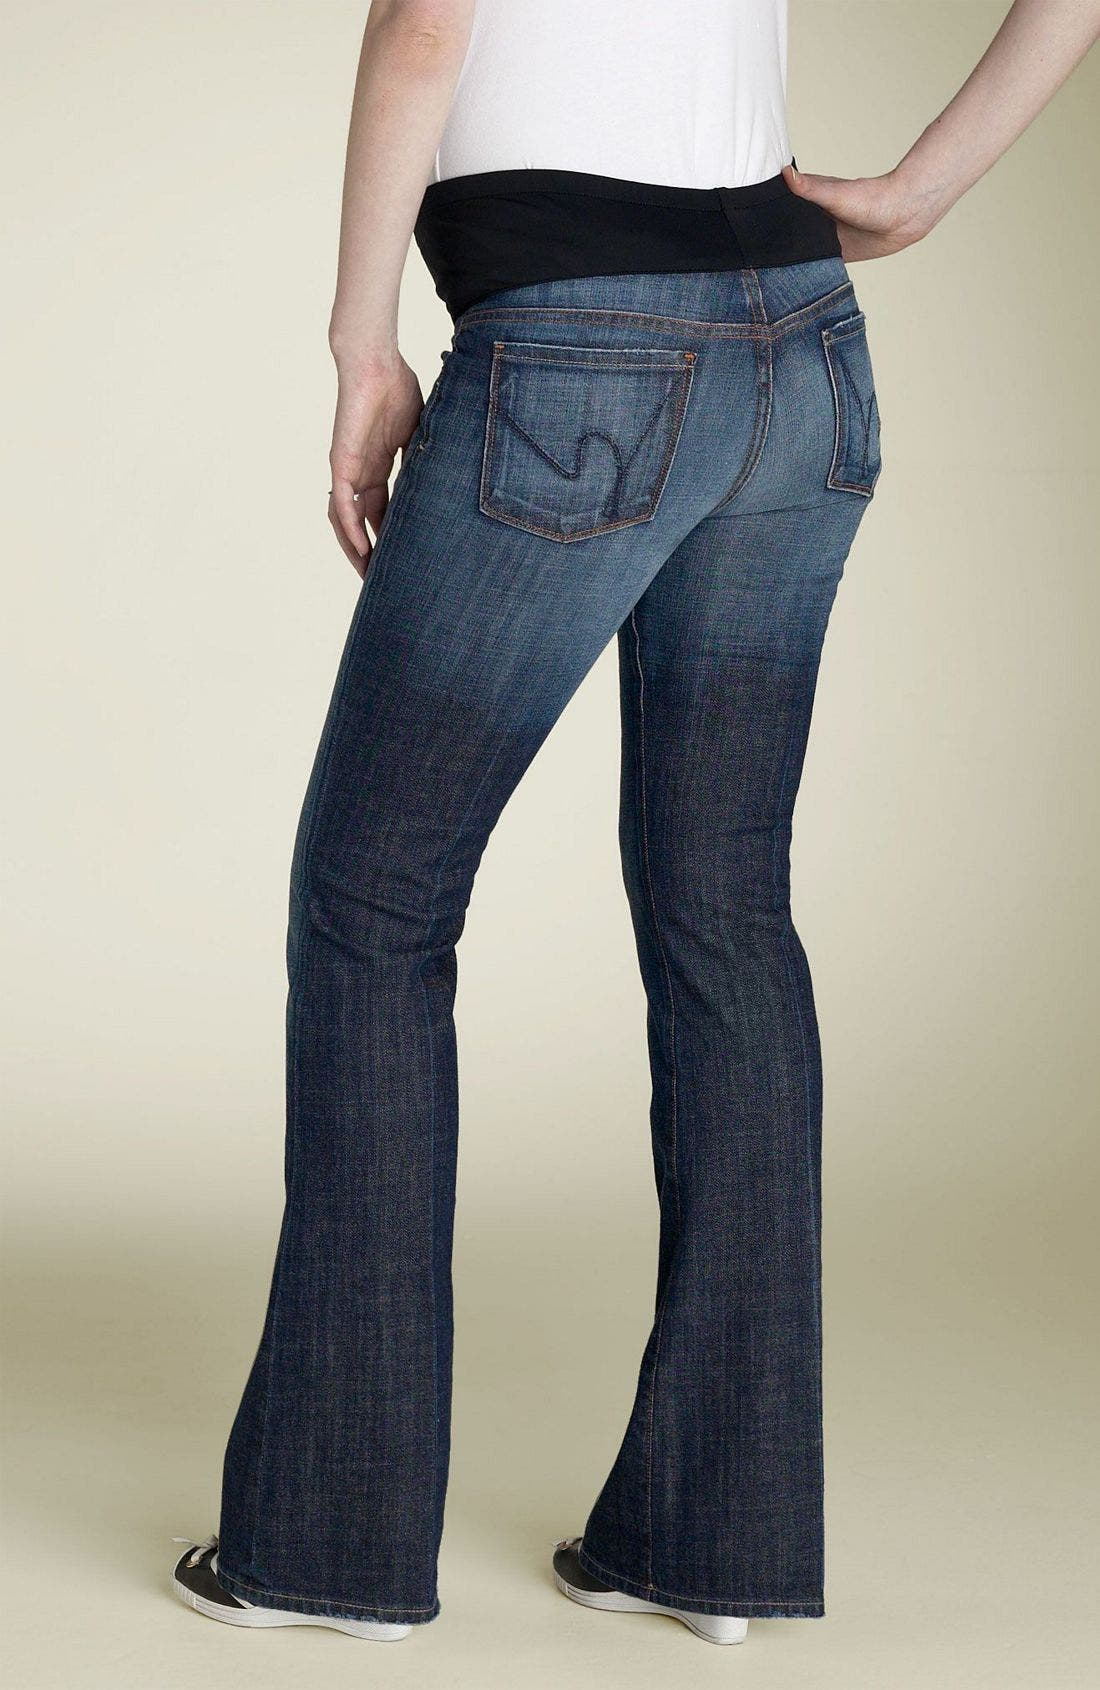 Alternate Image 1 Selected - Citizens of Humanity 'Kelly' Maternity Bootcut Stretch Jeans (New Pacific Blue)